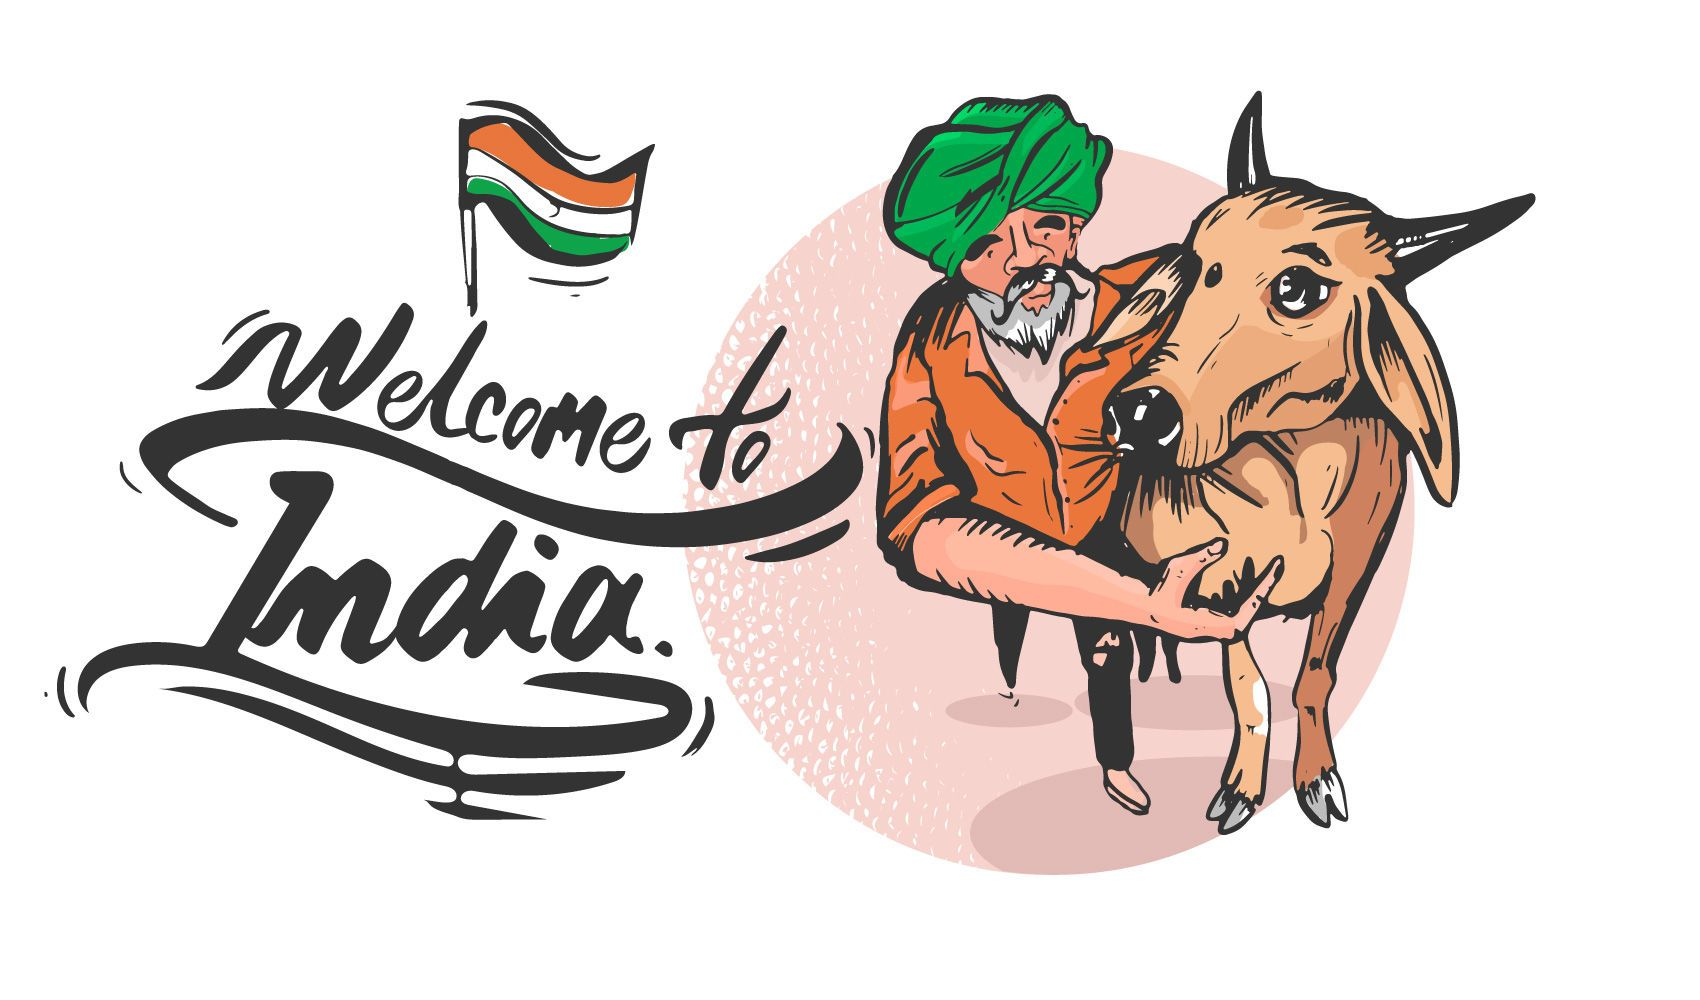 Welcome to India Banner Design